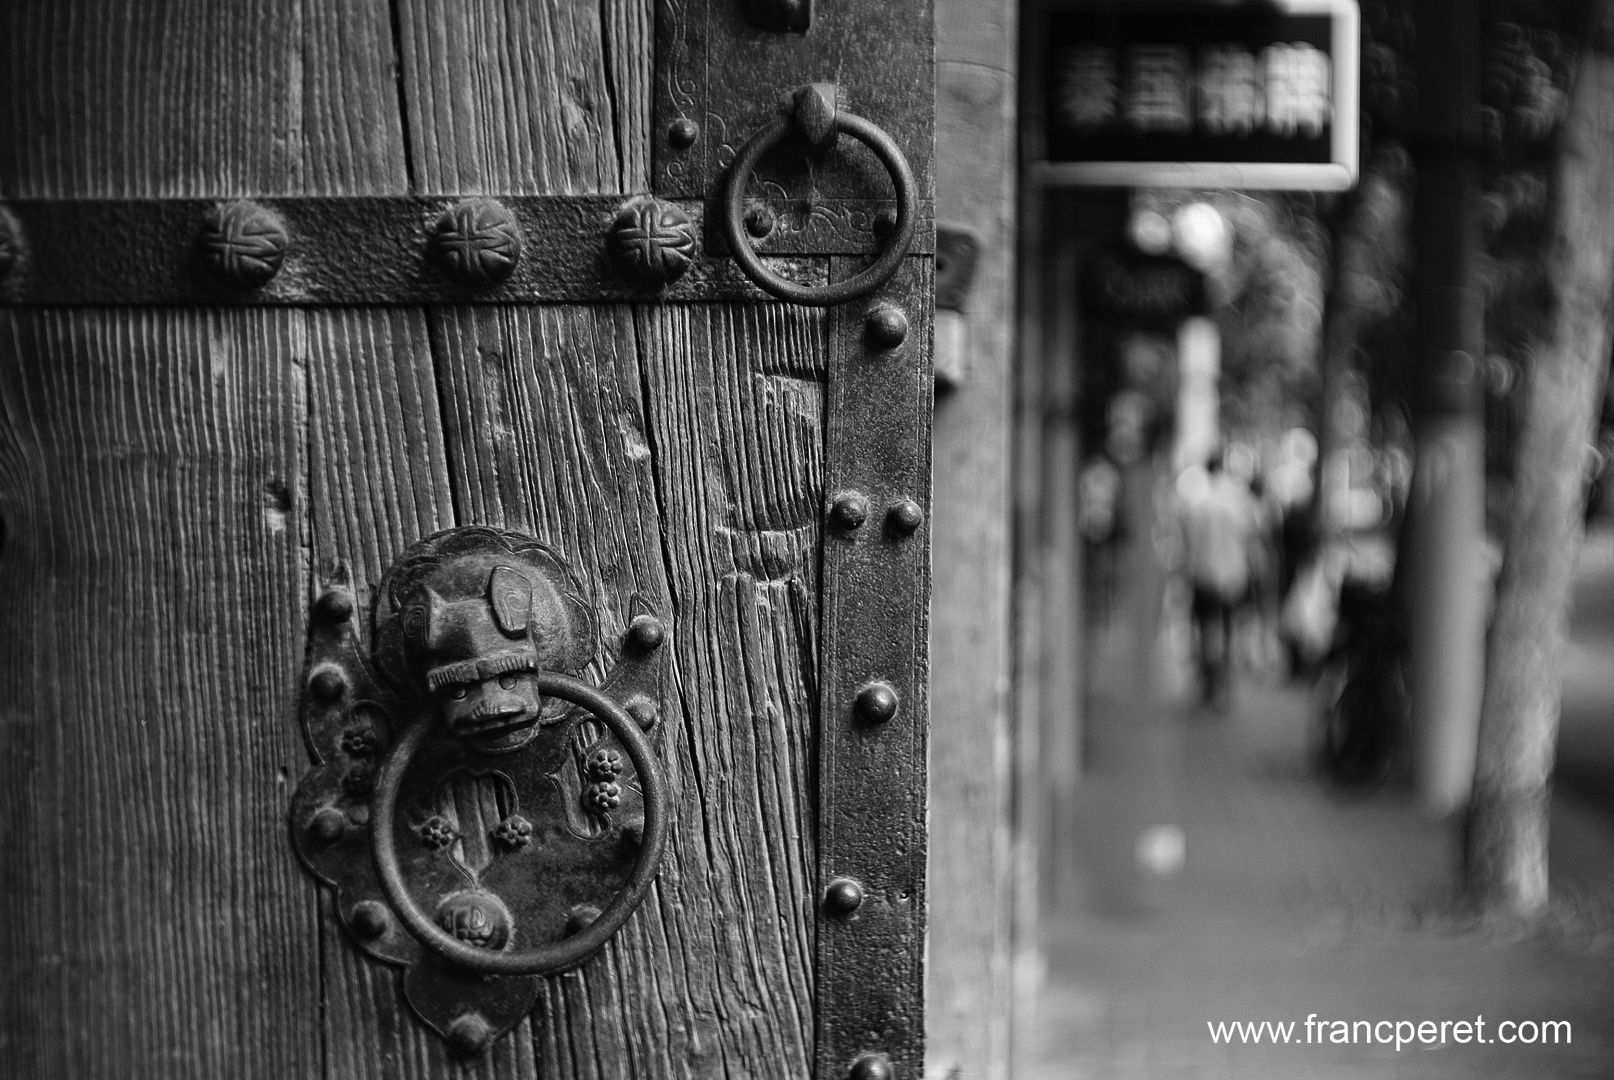 Architecture is another great topic for street photography in Shanghai